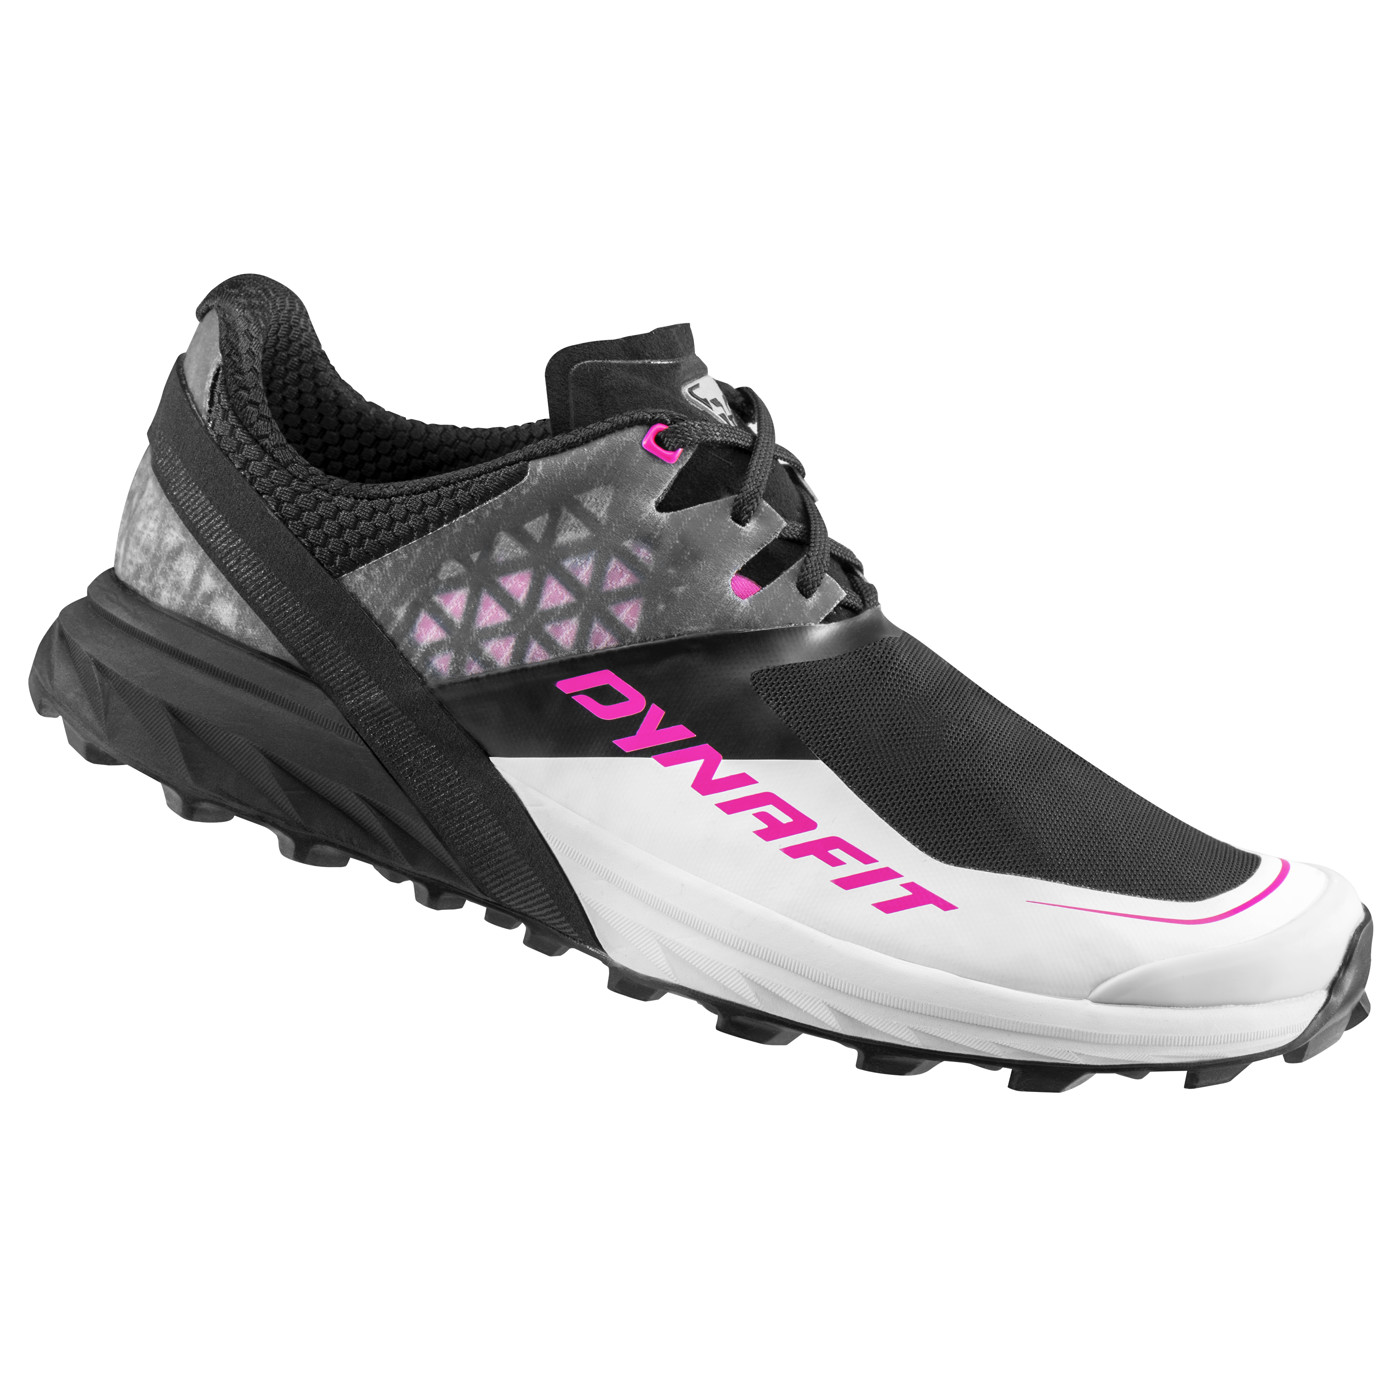 DYNAFIT ALPINE DNA W - Damen